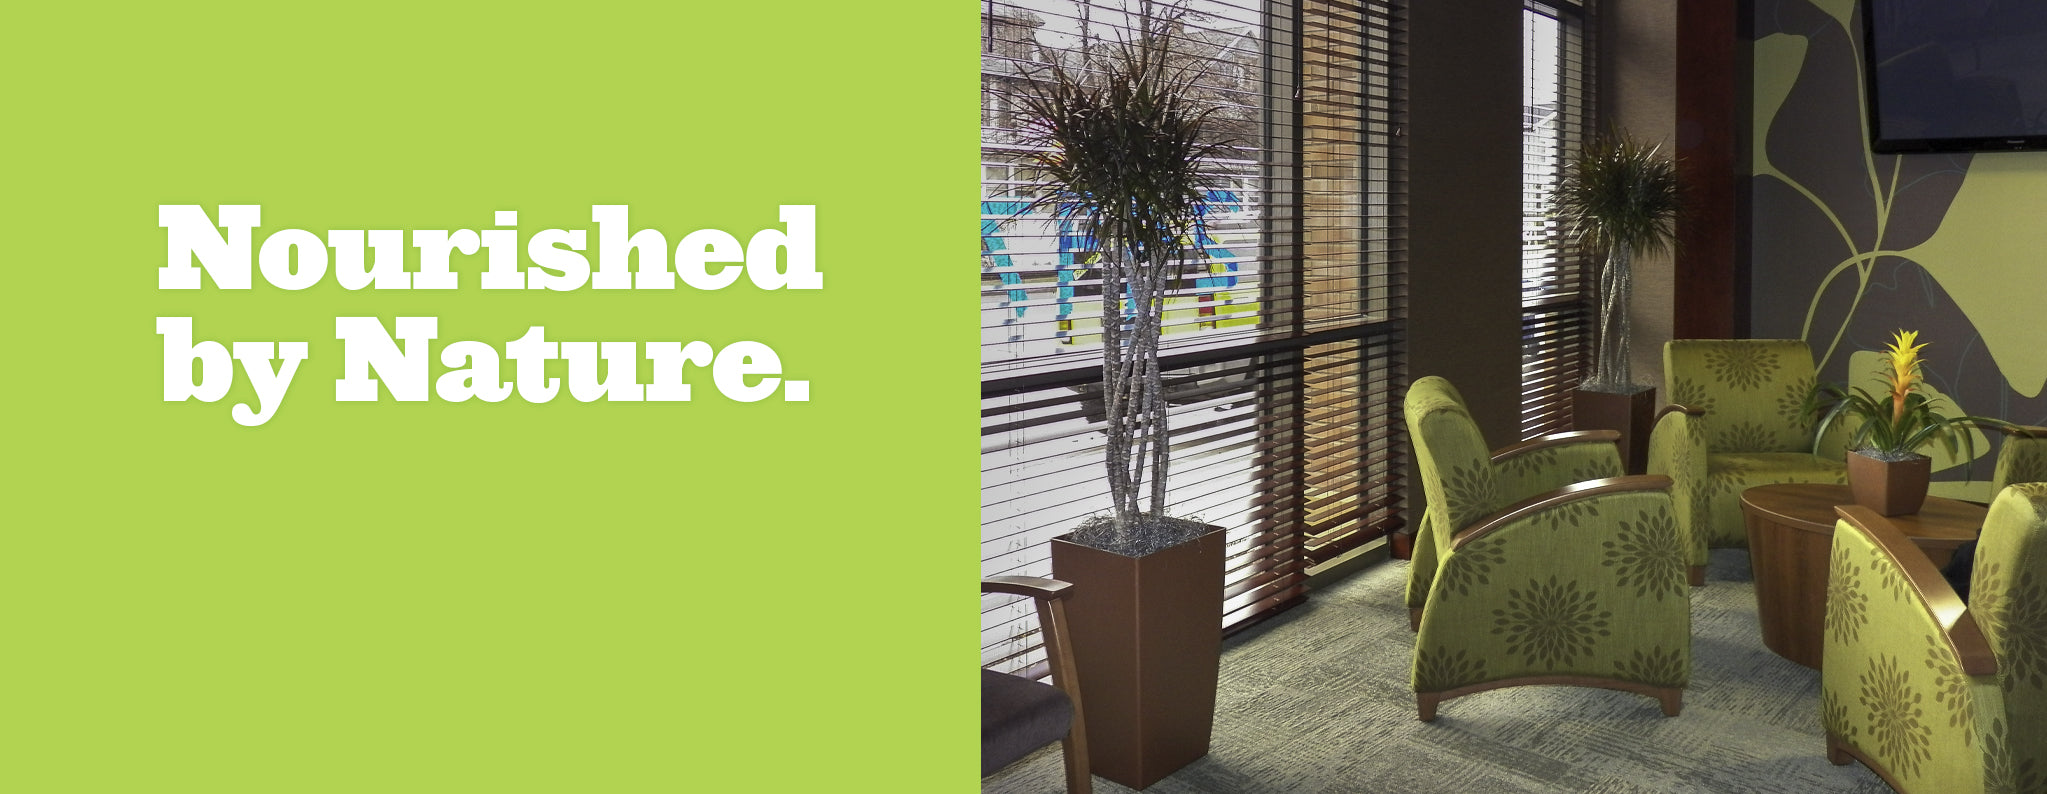 Nourished by Nature - with Optimum One TM Planters at Botanicus Direct